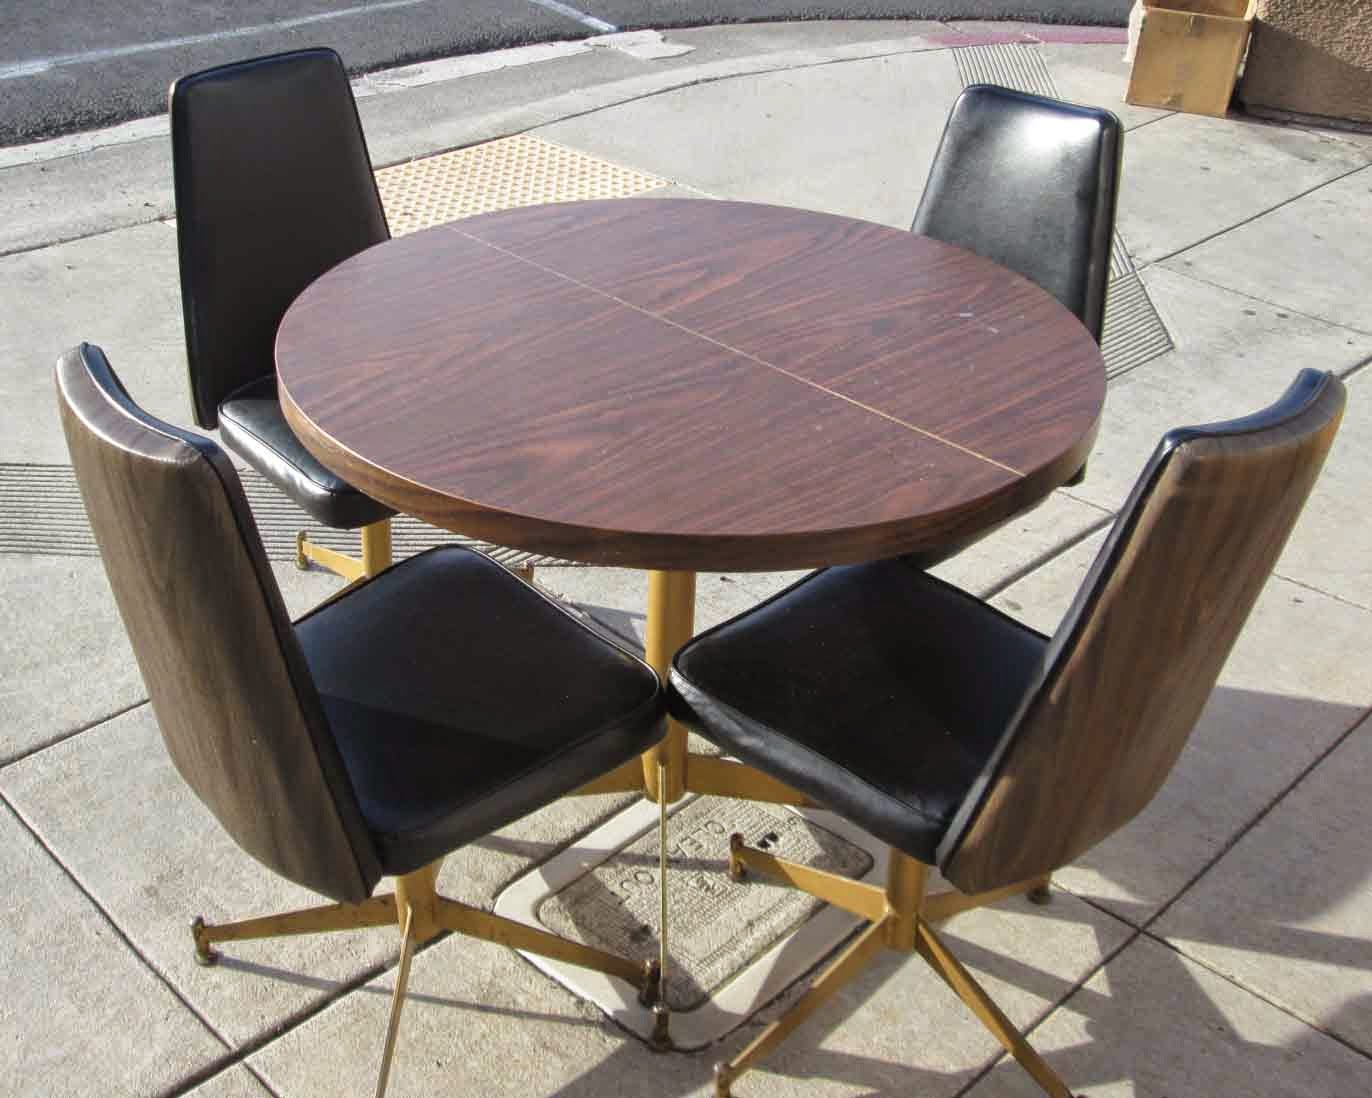 Formica Table And Chairs Uhuru Furniture And Collectibles Sold Retro Formica Table W